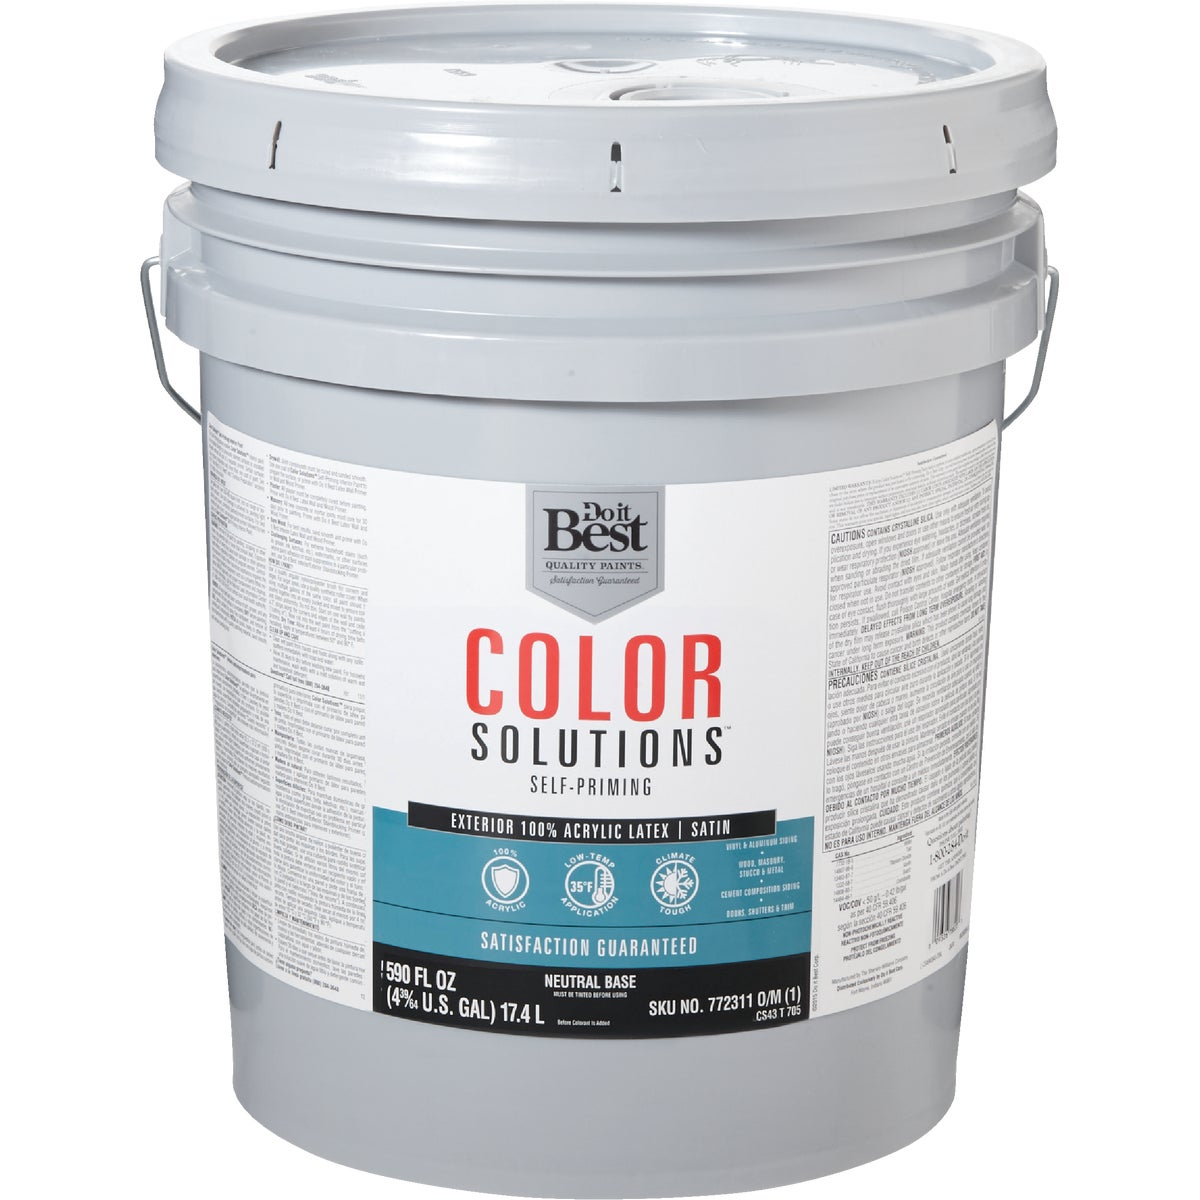 EXT SAT NEUTRAL BS PAINT - CS43T0705-20 by Do it Best